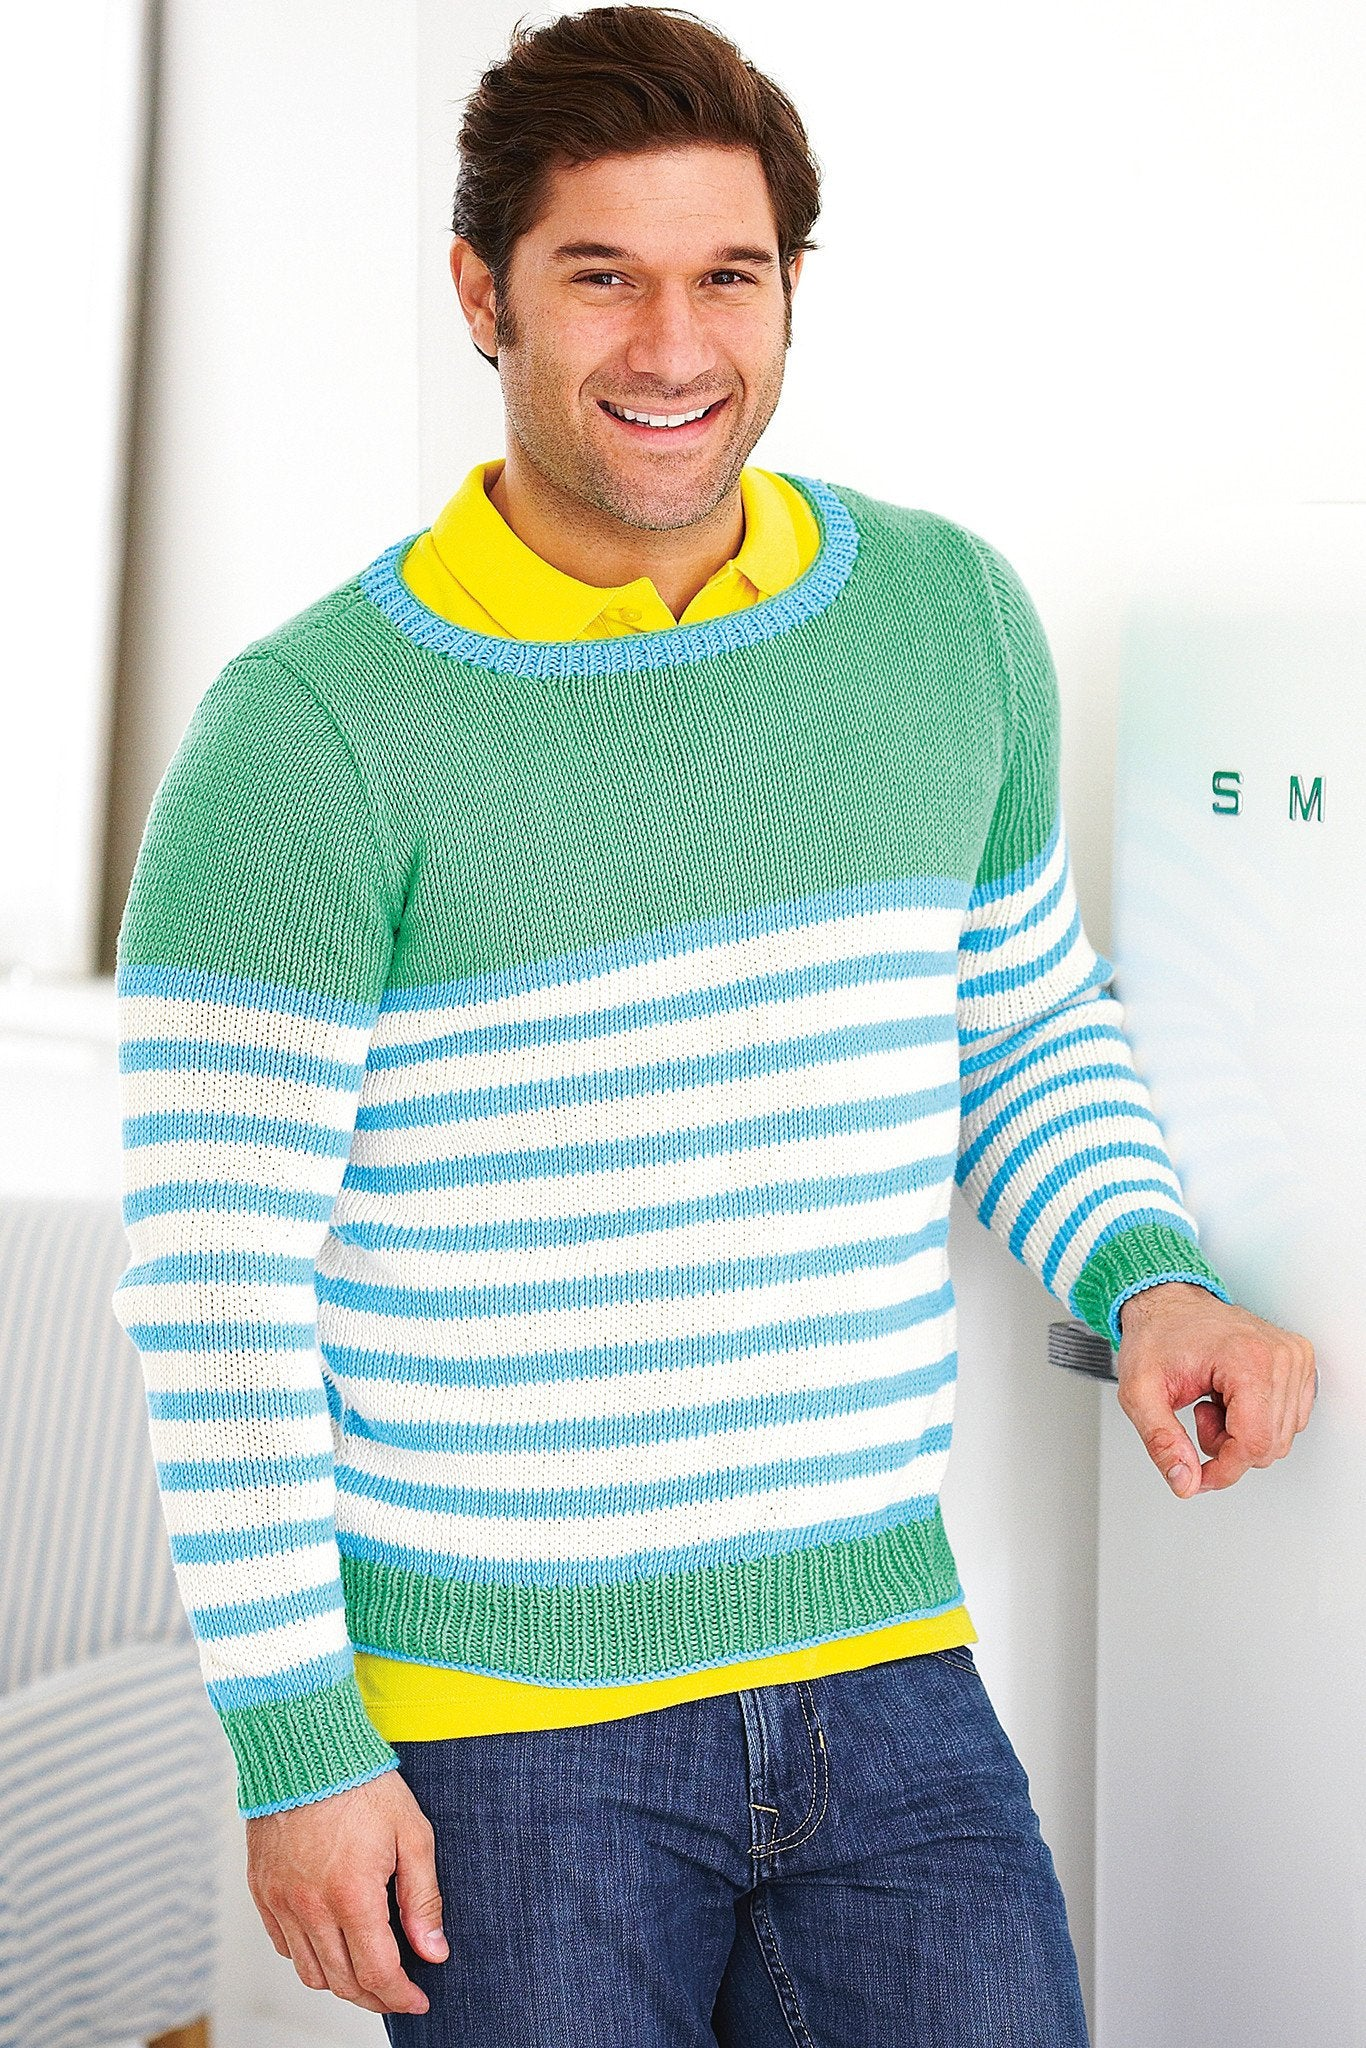 Striped Sweater Mens Knitting Pattern – The Knitting Network